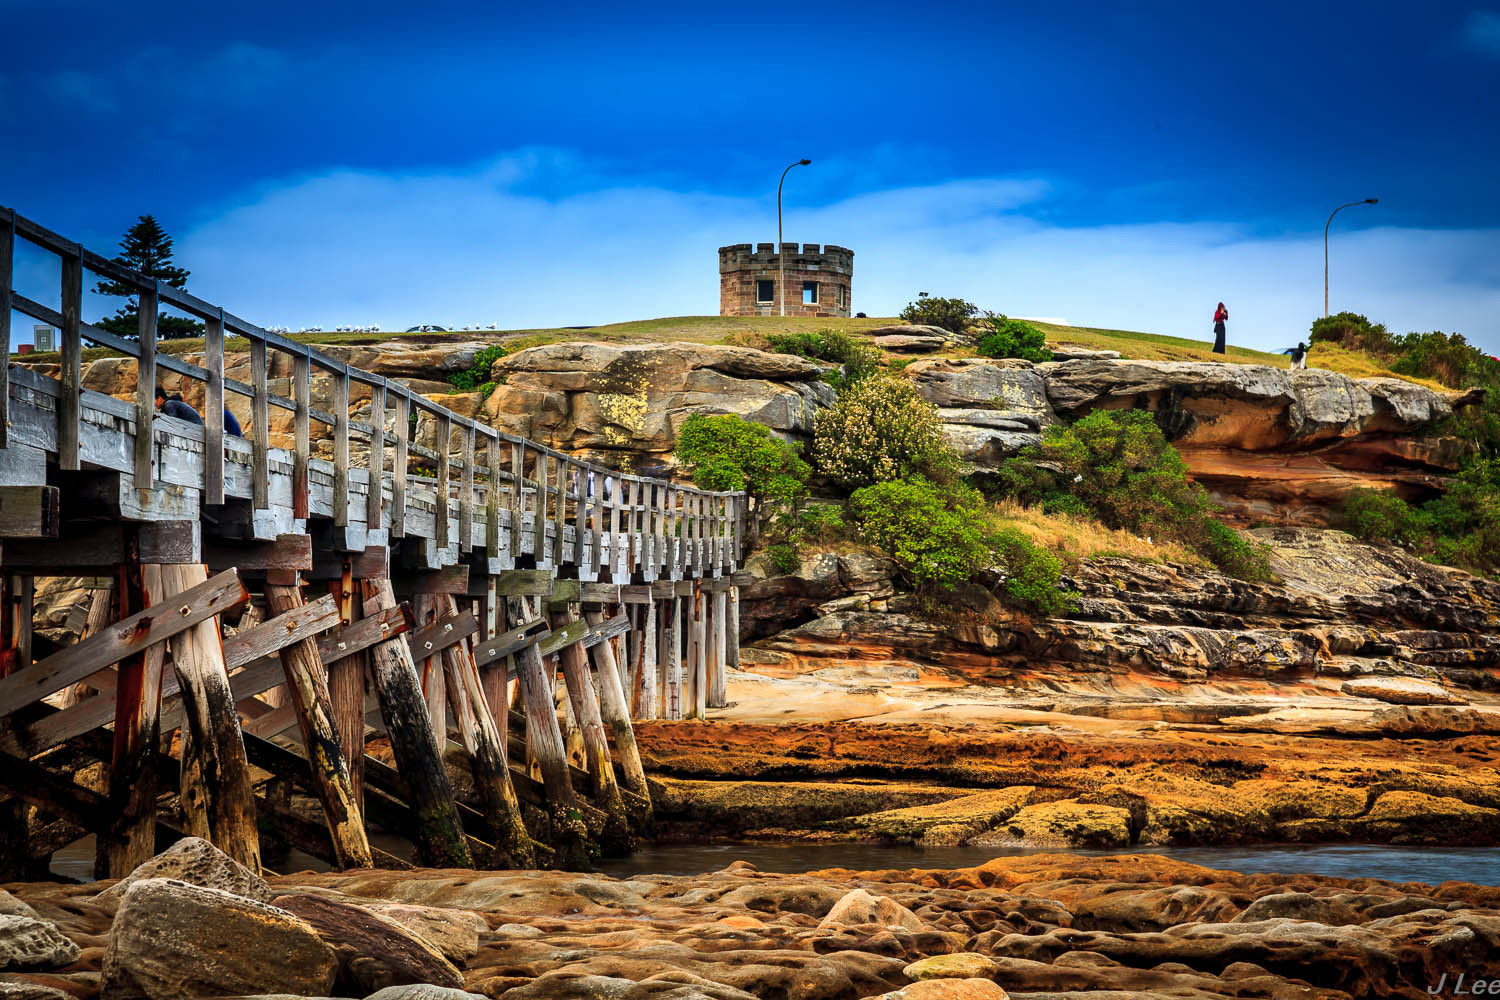 Photograph La Perouse by James Lee on 500px